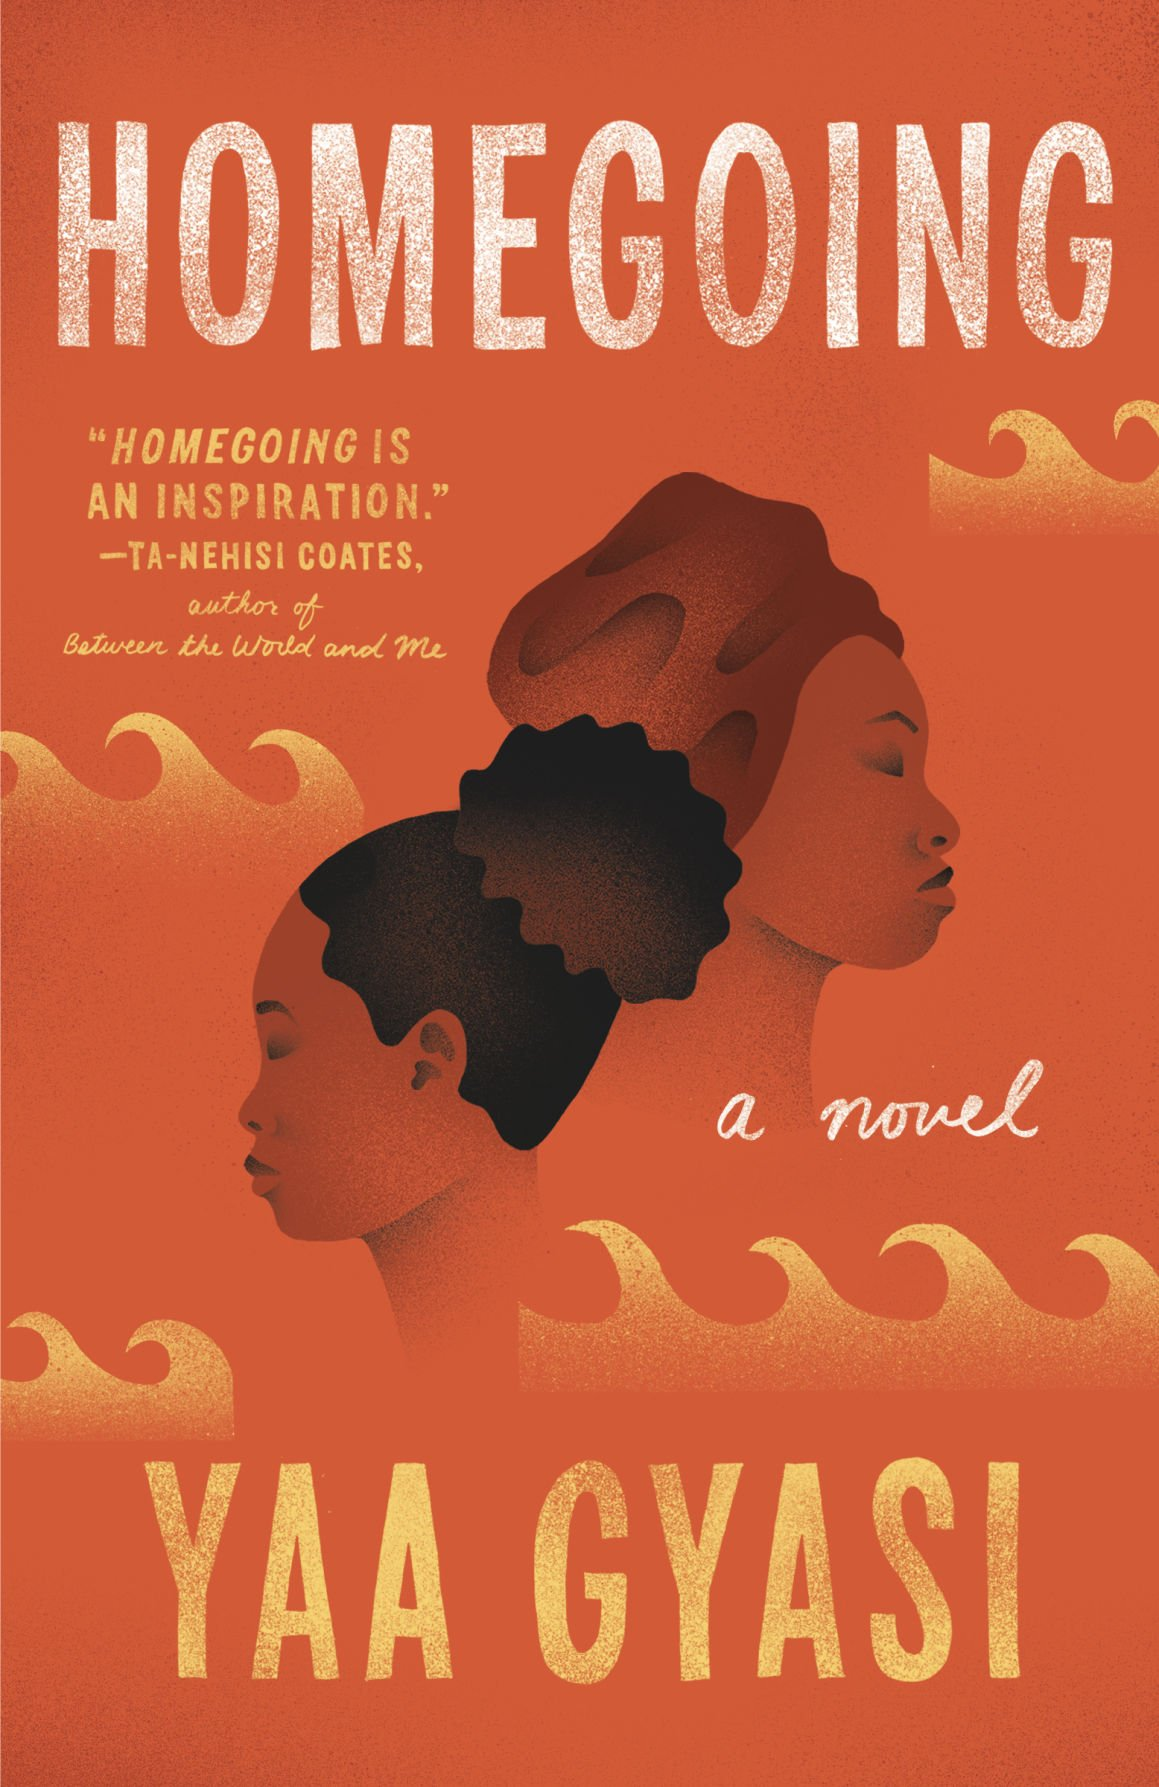 'Homegoing' book cover